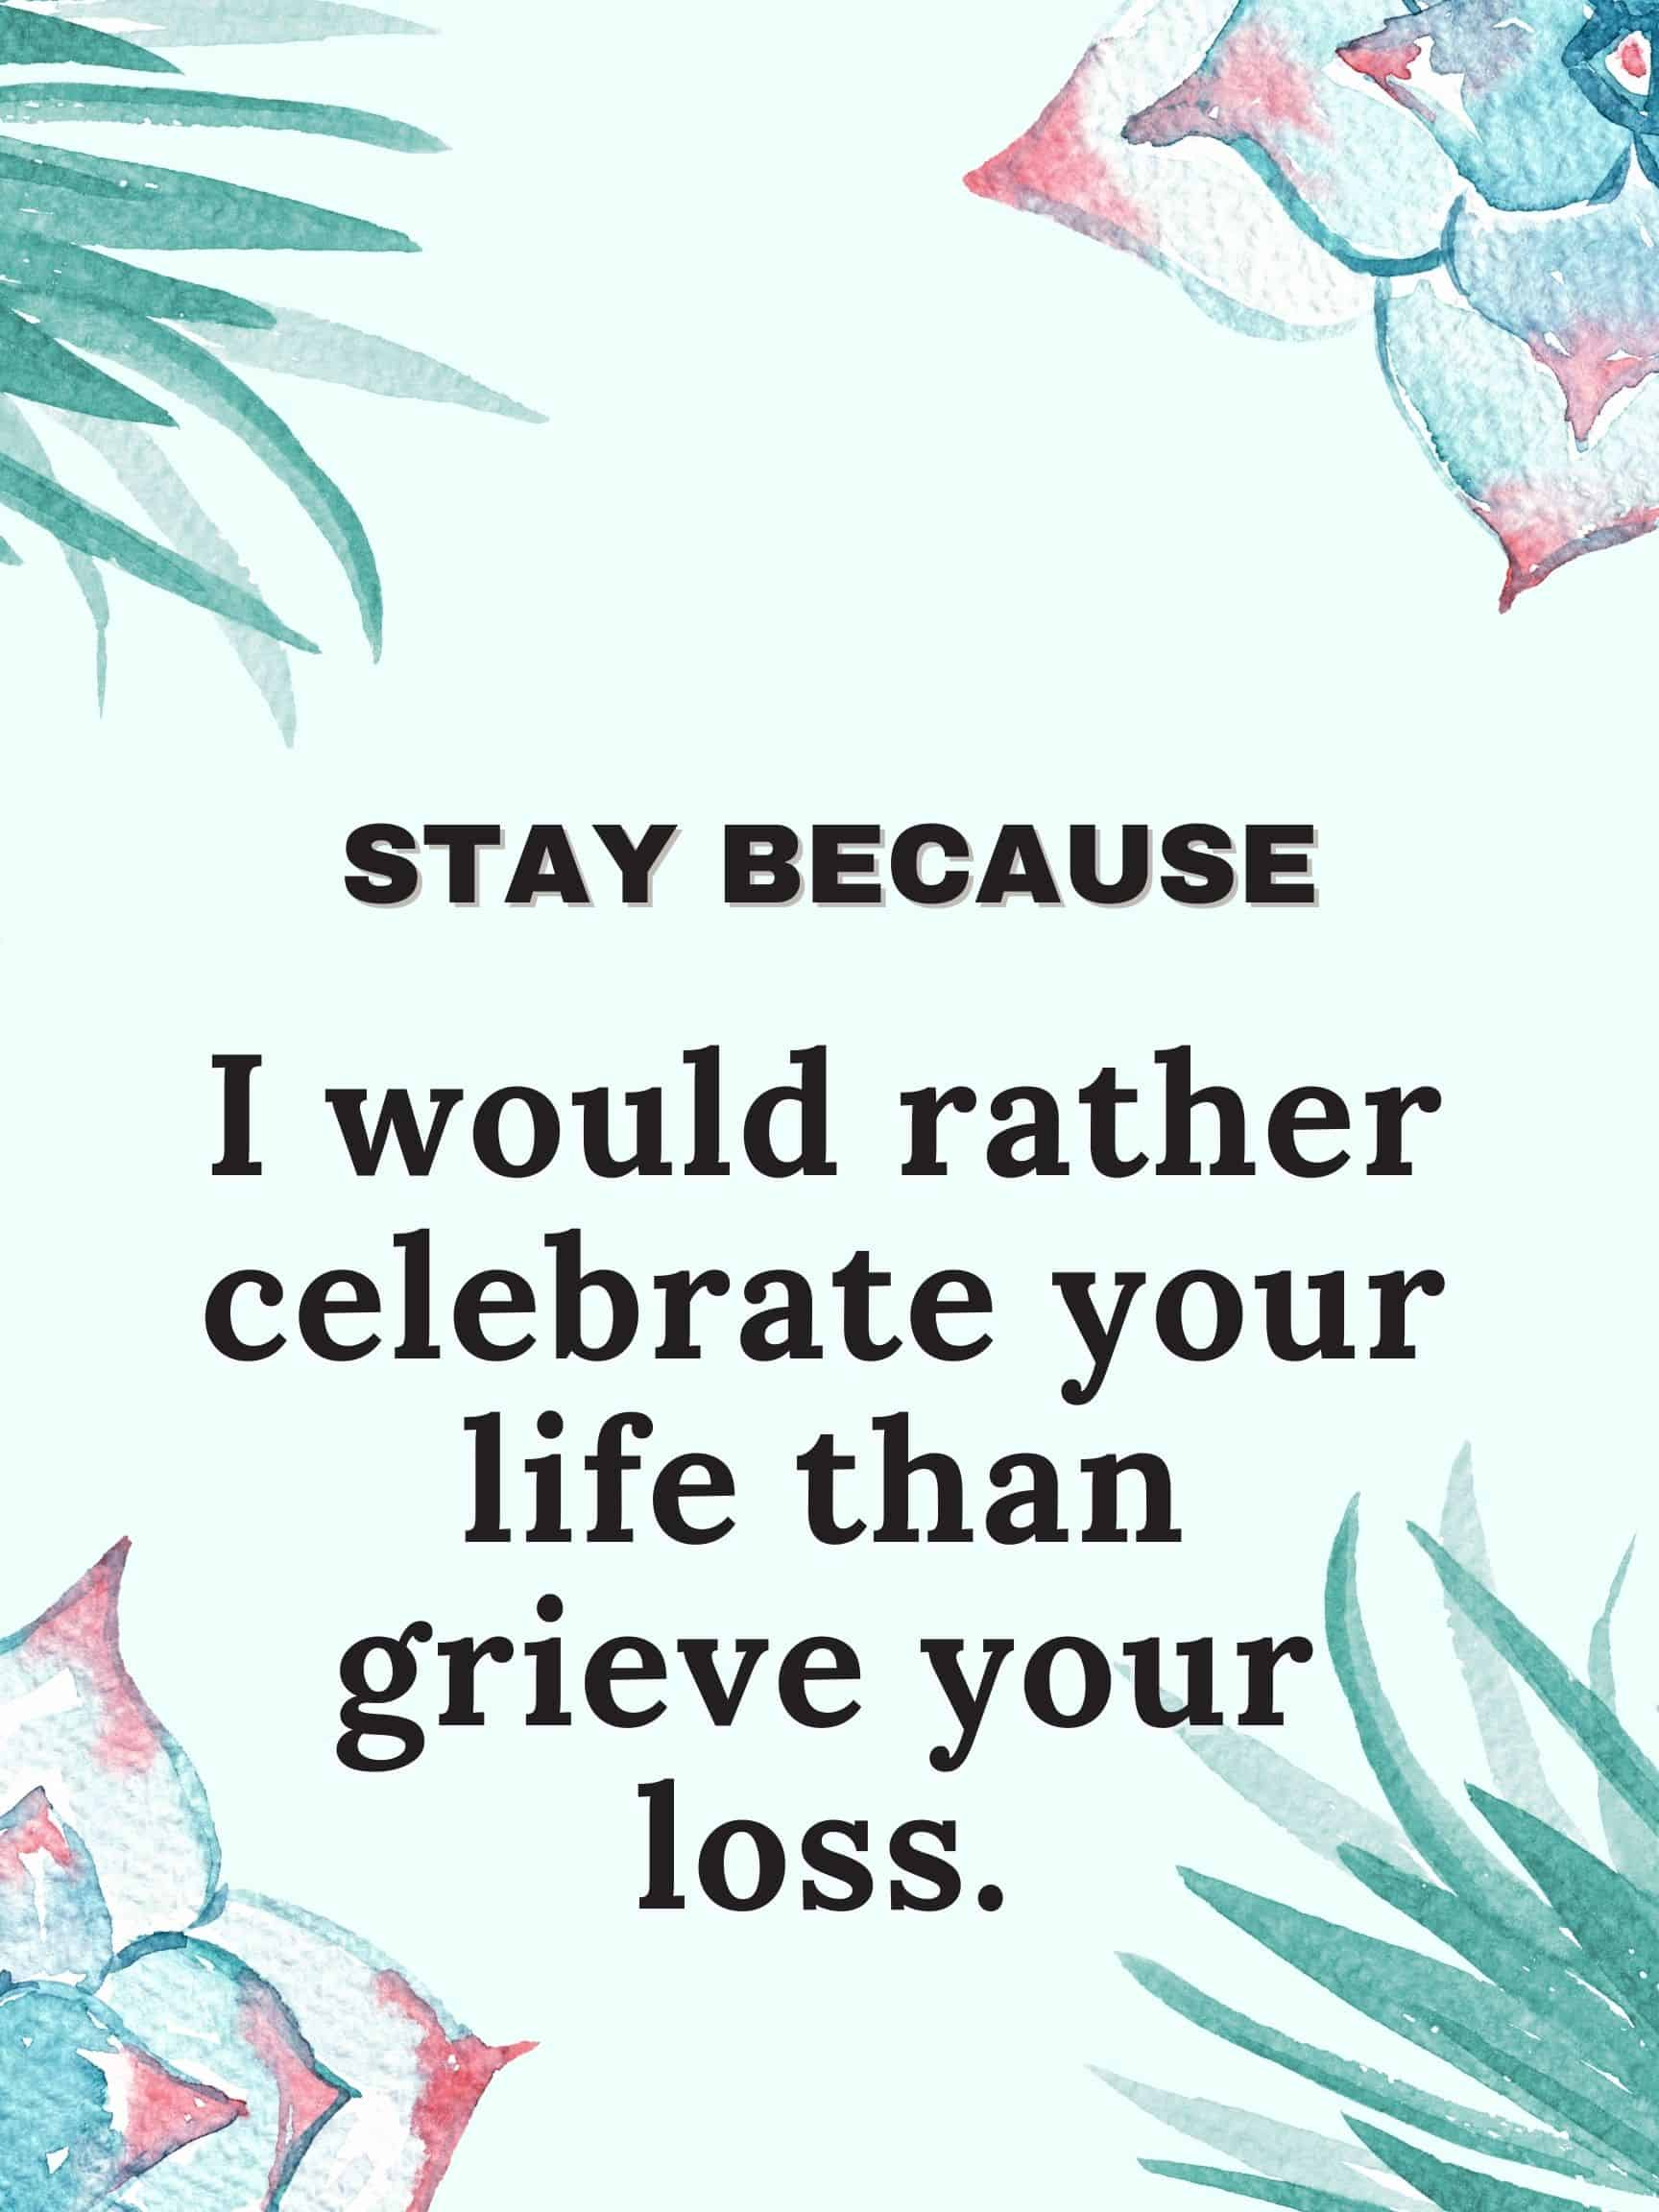 Stay because I would rather celebrate your life than grieve your loss. #StayBecause